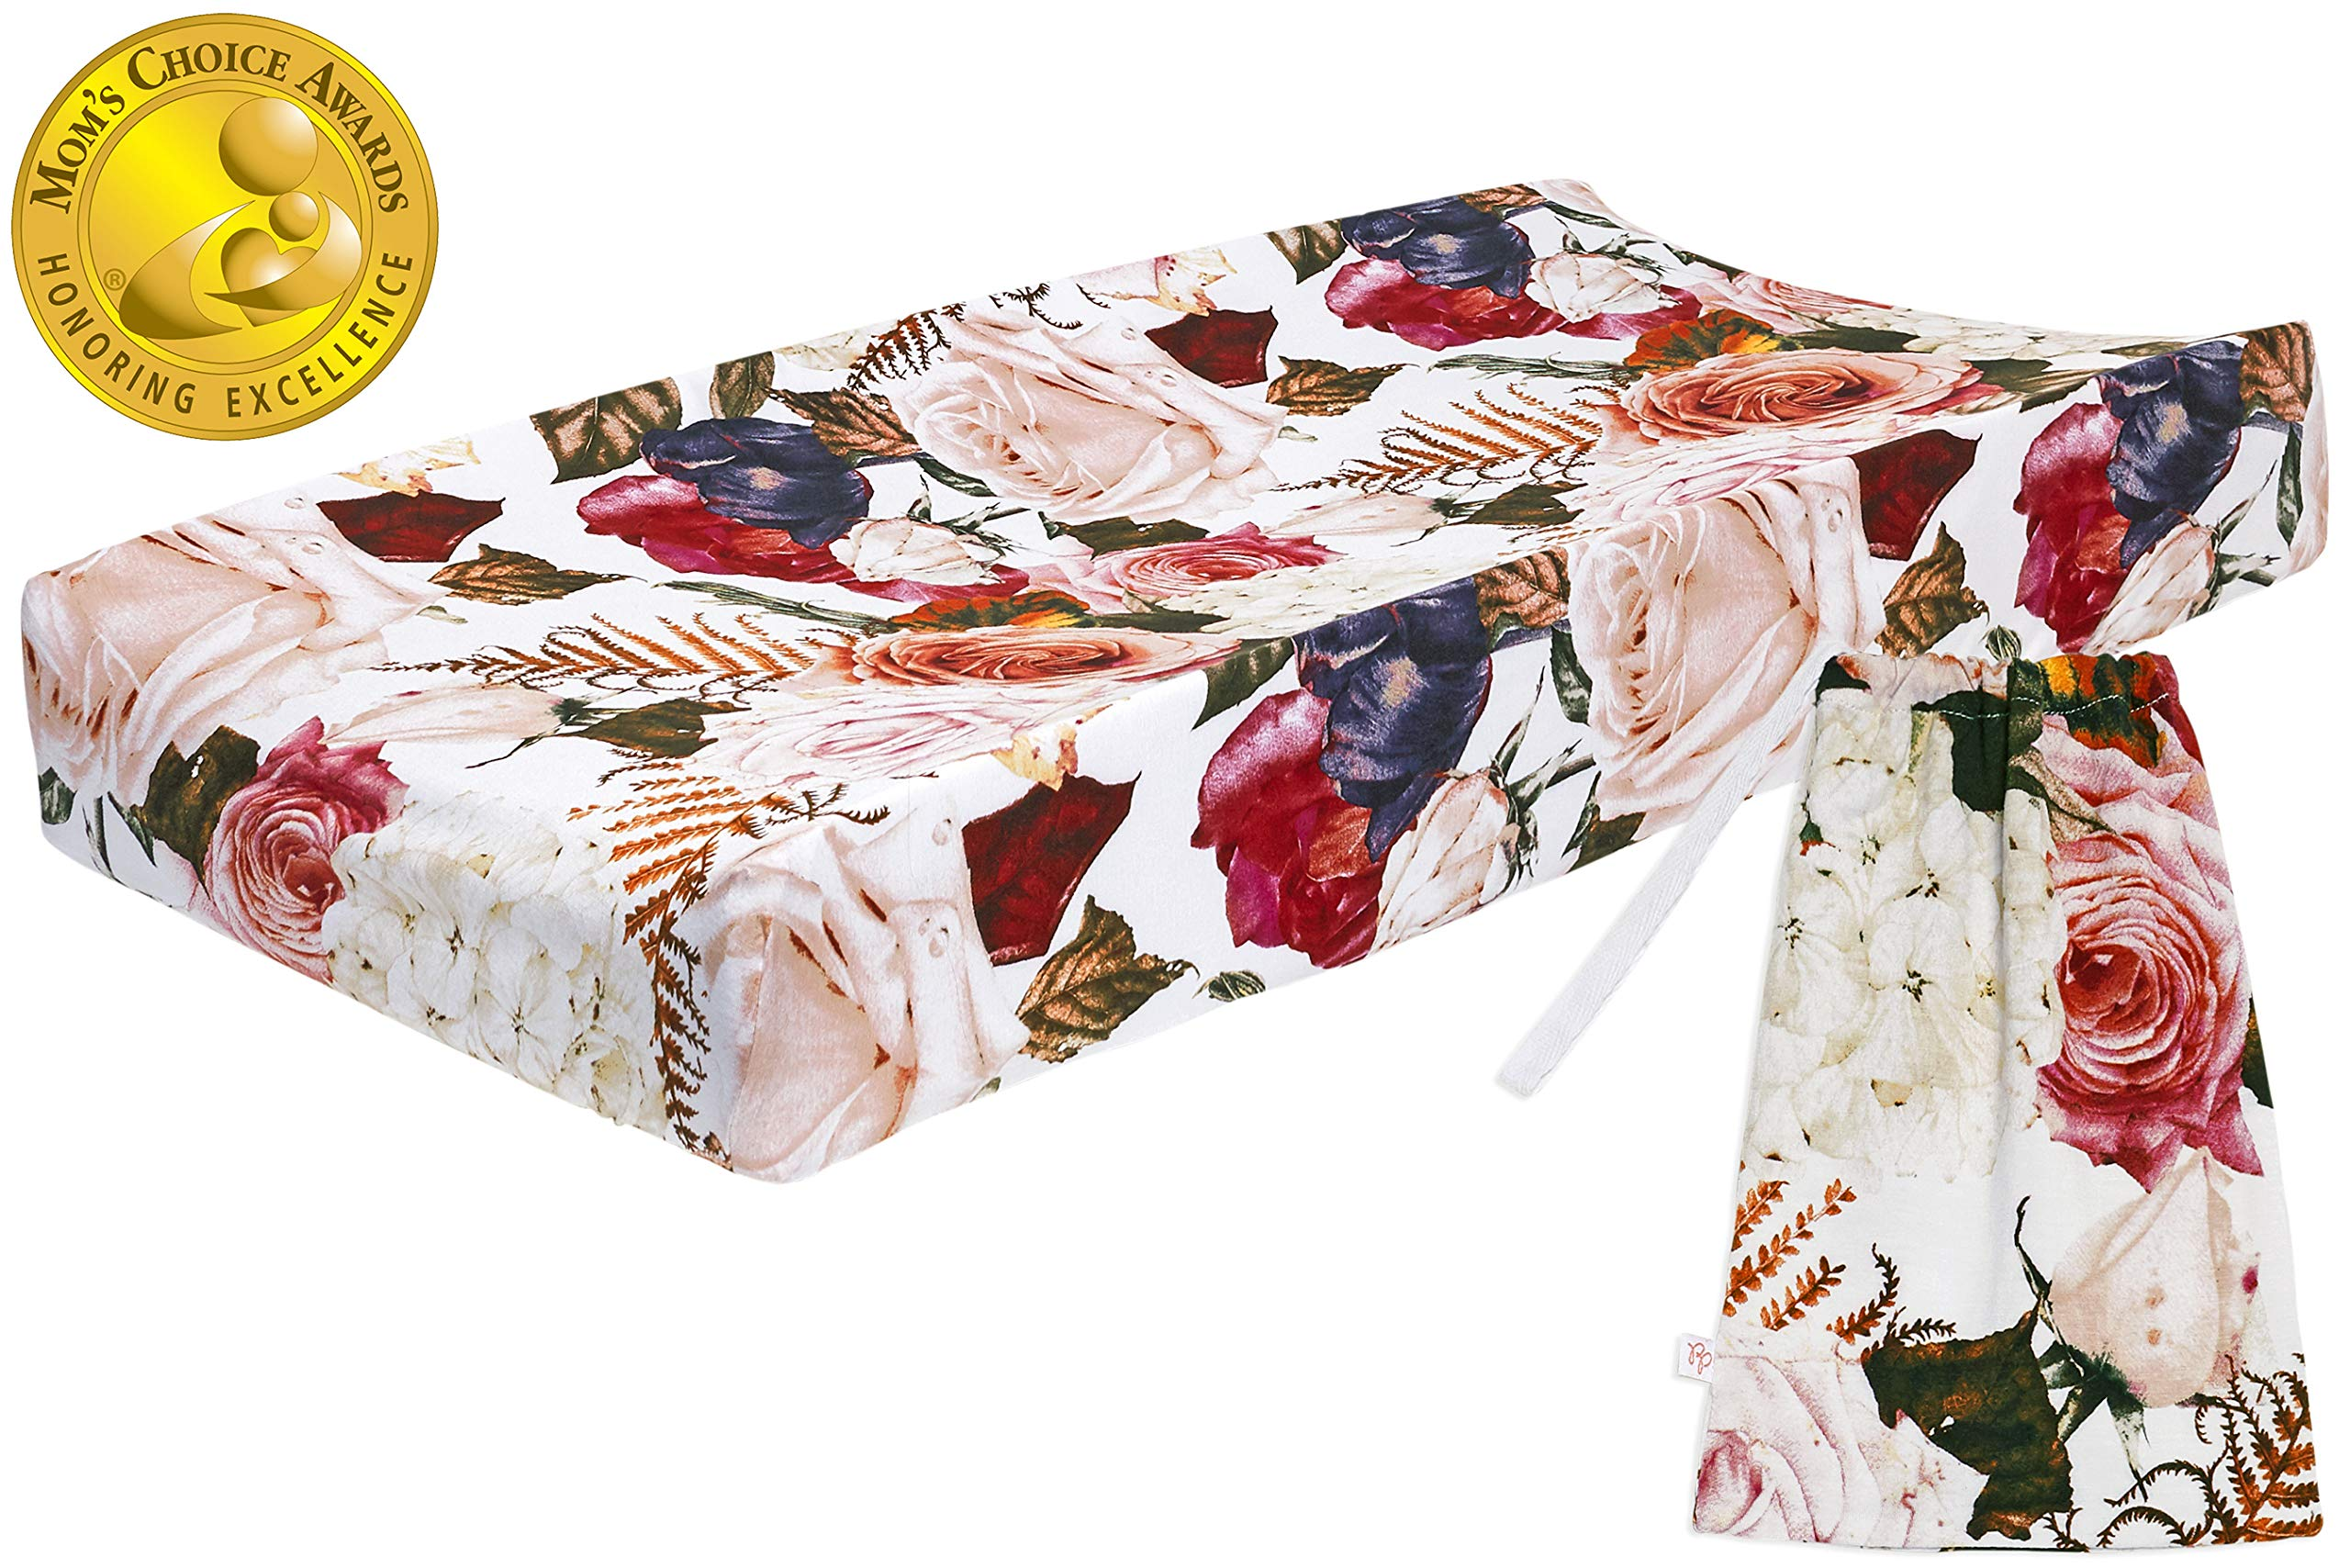 Posh Peanut Baby Changing Pad Cover Stretchy Bambo Viscose, for Standard 16'' by 32'' (Black Rose) by Posh Peanut